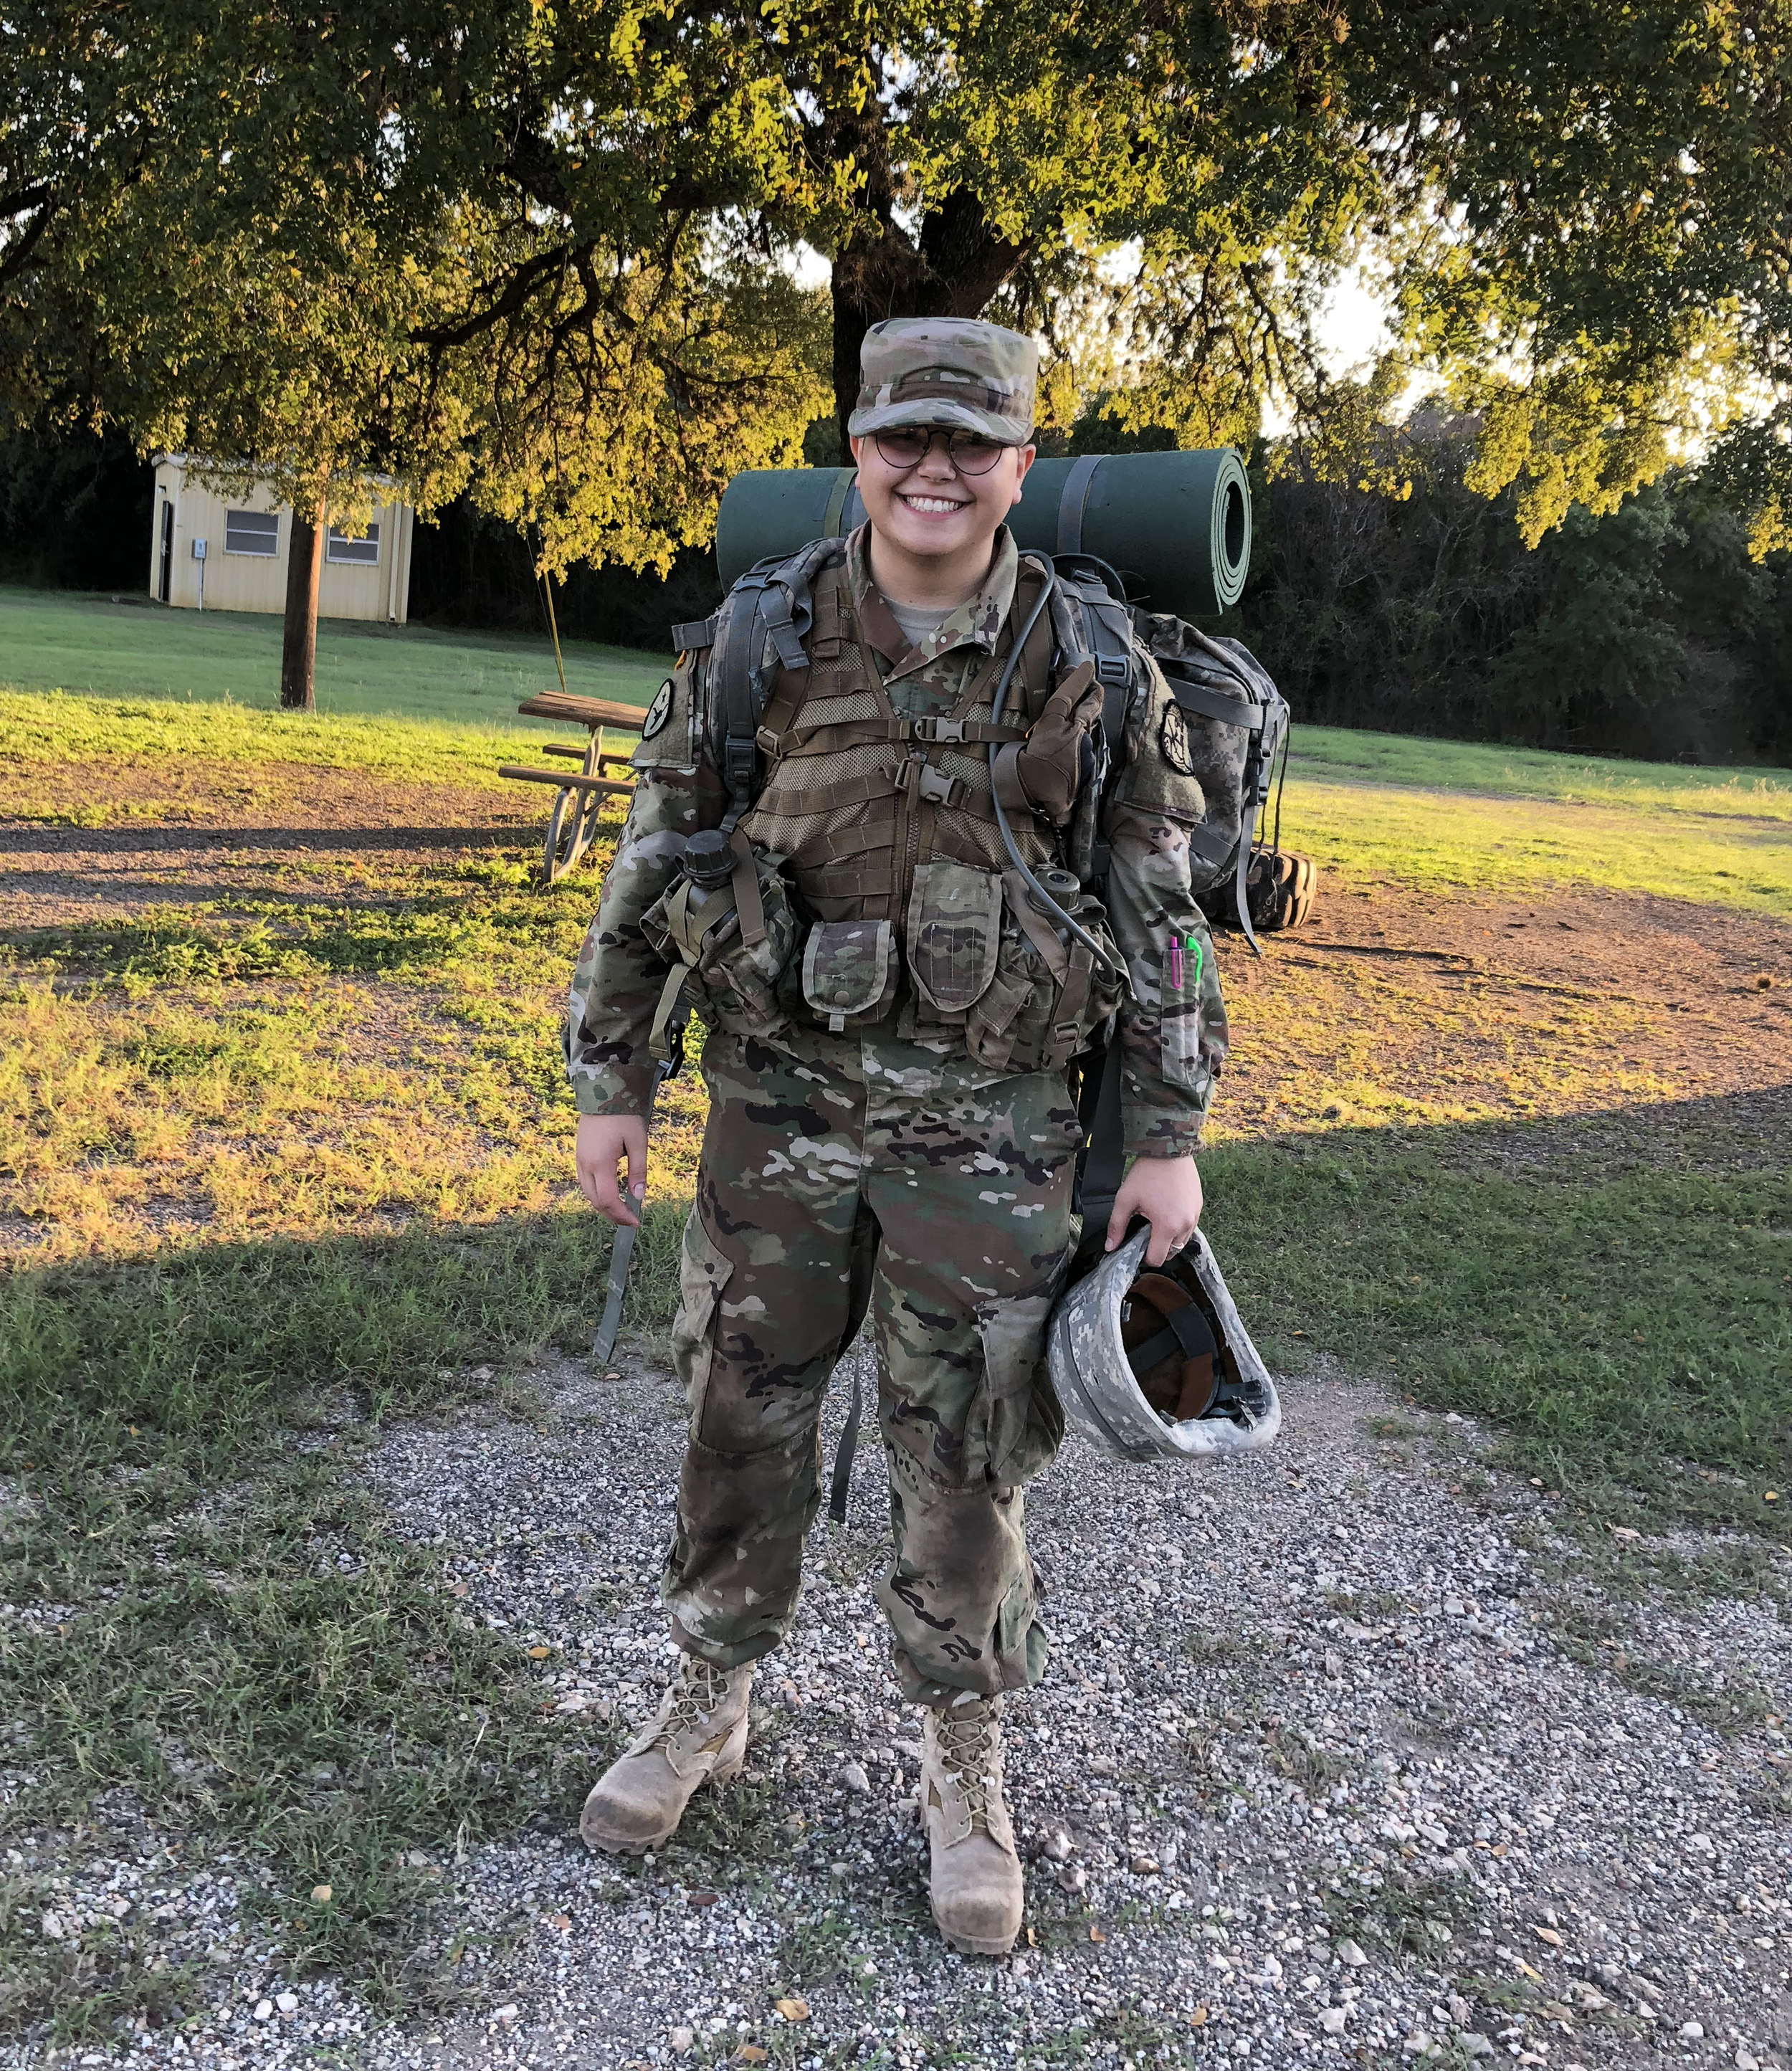 Trans student set to lose Army scholarship following new military policy